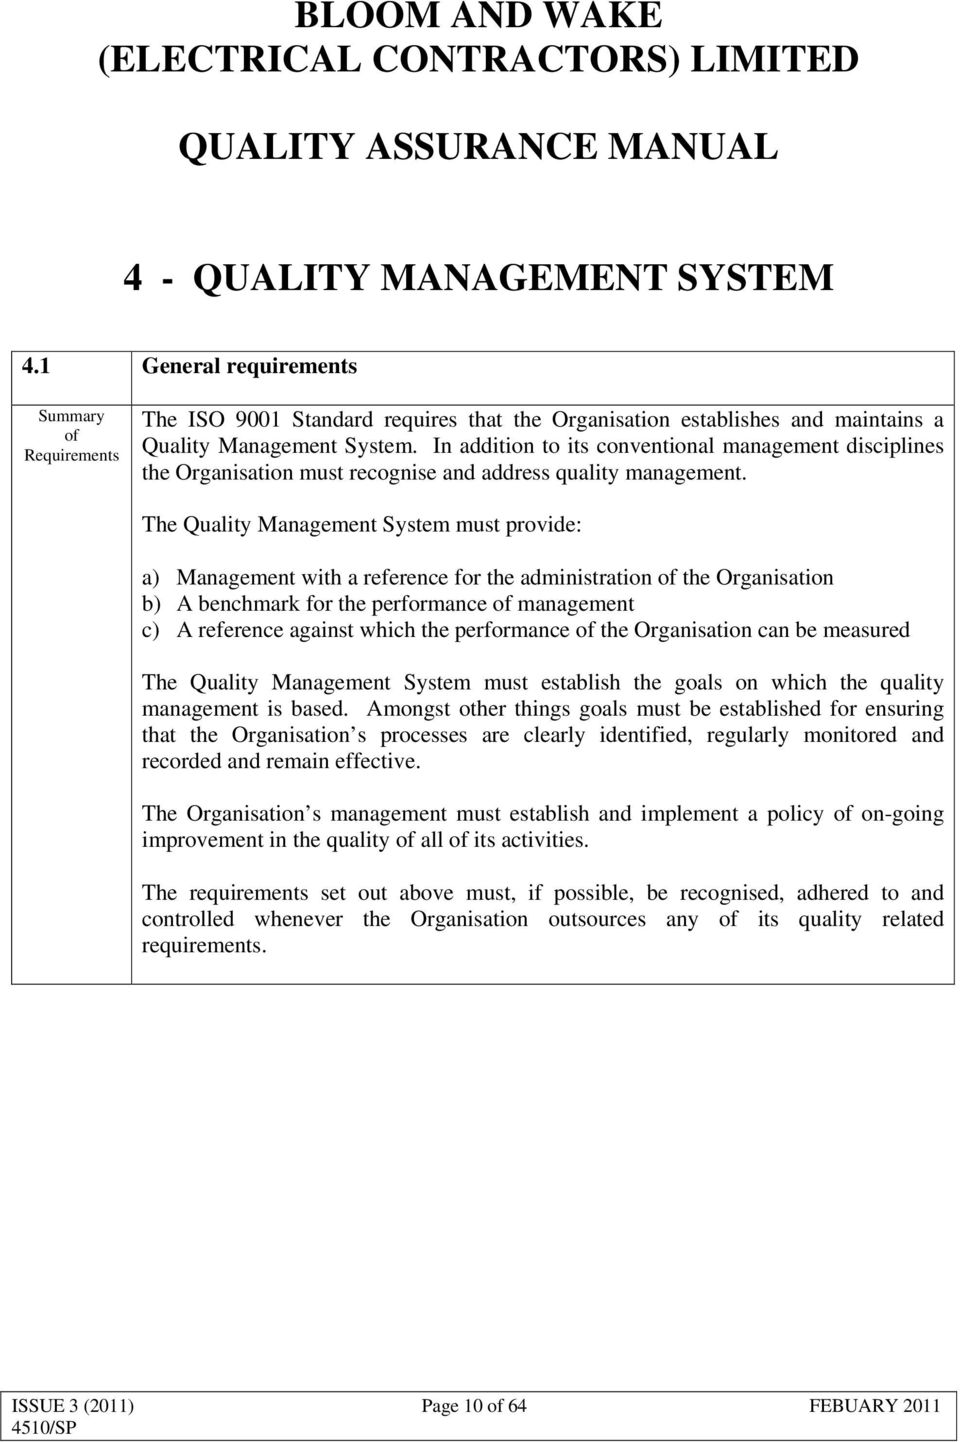 The Quality Management System must provide: a) Management with a reference for the administration the Organisation b) A benchmark for the performance management c) A reference against which the